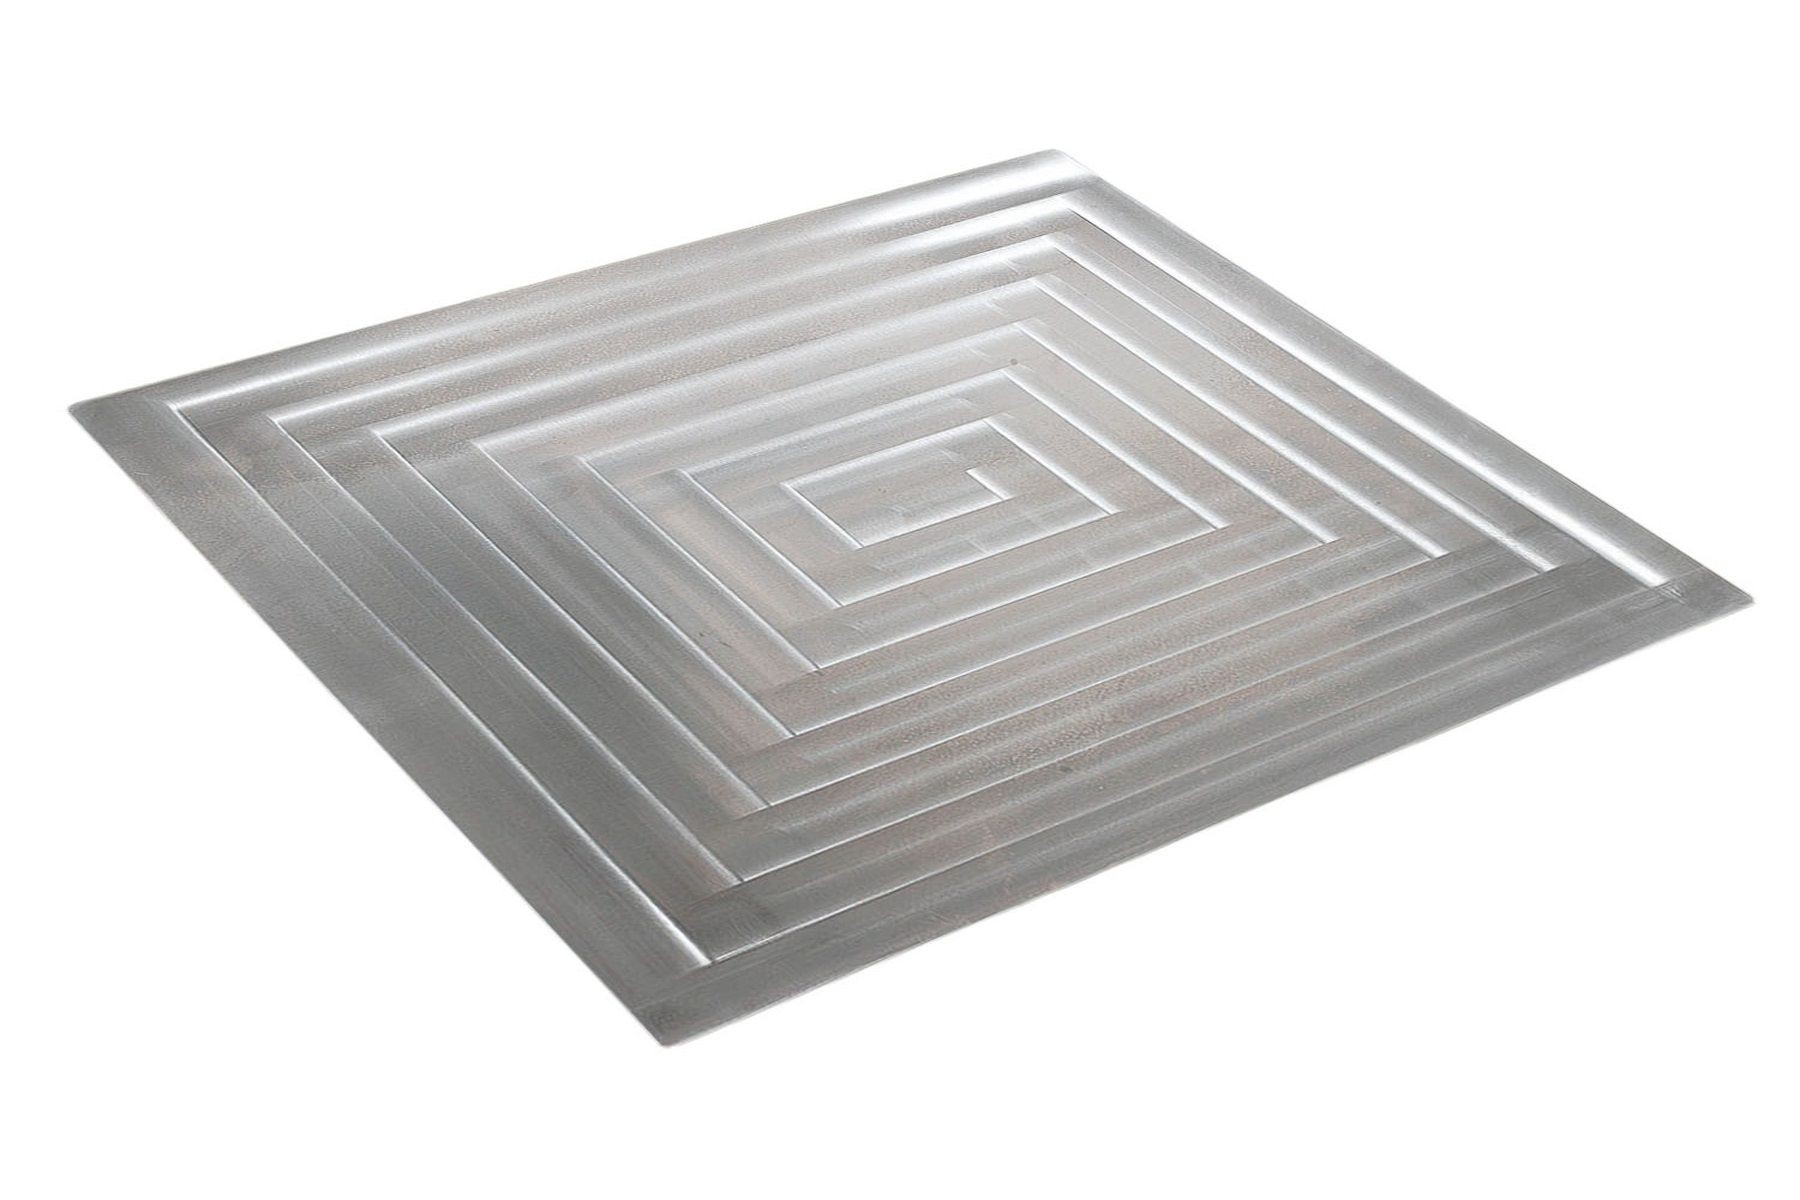 "Bon Chef 52102 EZ Fit Rectangle Stainless Steel Half Size Tile, 12 3/4"" x 10 3/8"""